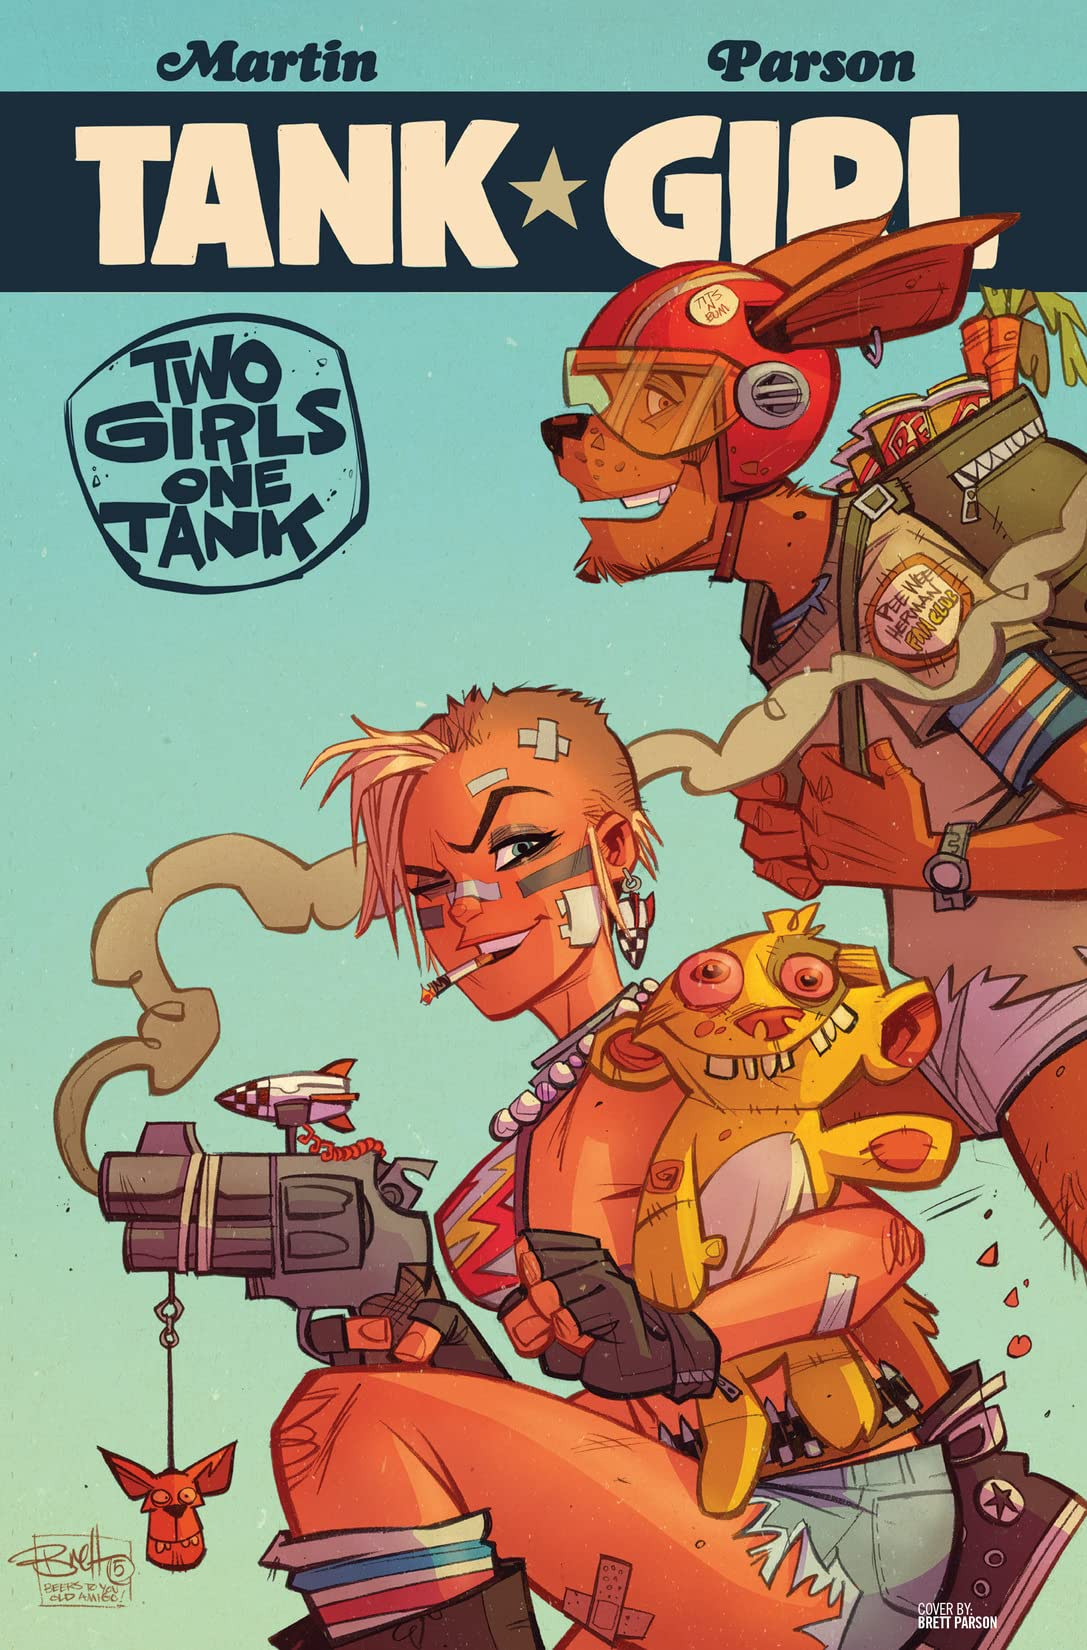 Tank Girl: Two Girls One Tank #2